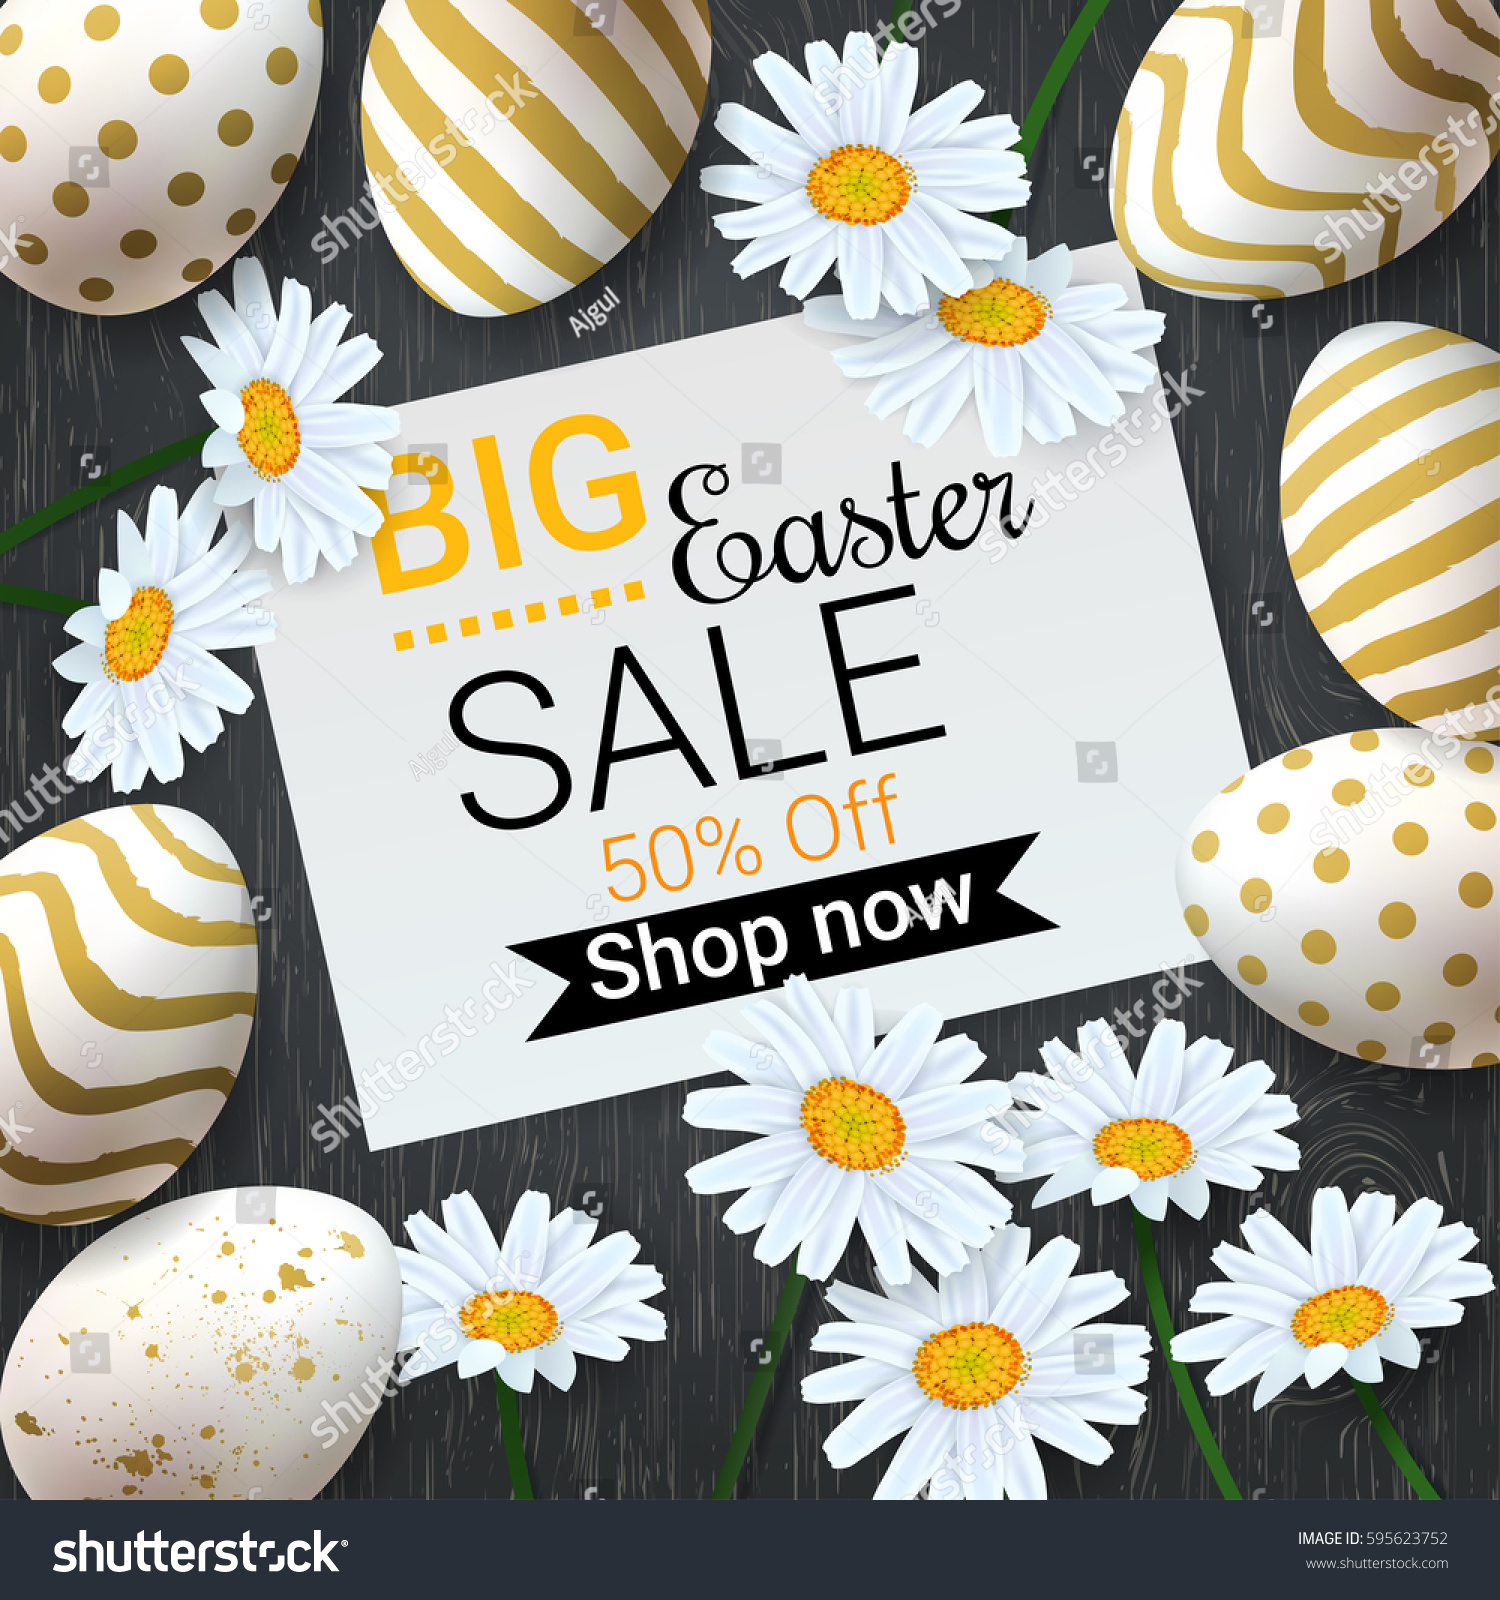 Big easter sale background beautiful daisy stock photo photo big easter sale background with beautiful daisy flowers and golden decorated eggs vector template for izmirmasajfo Images